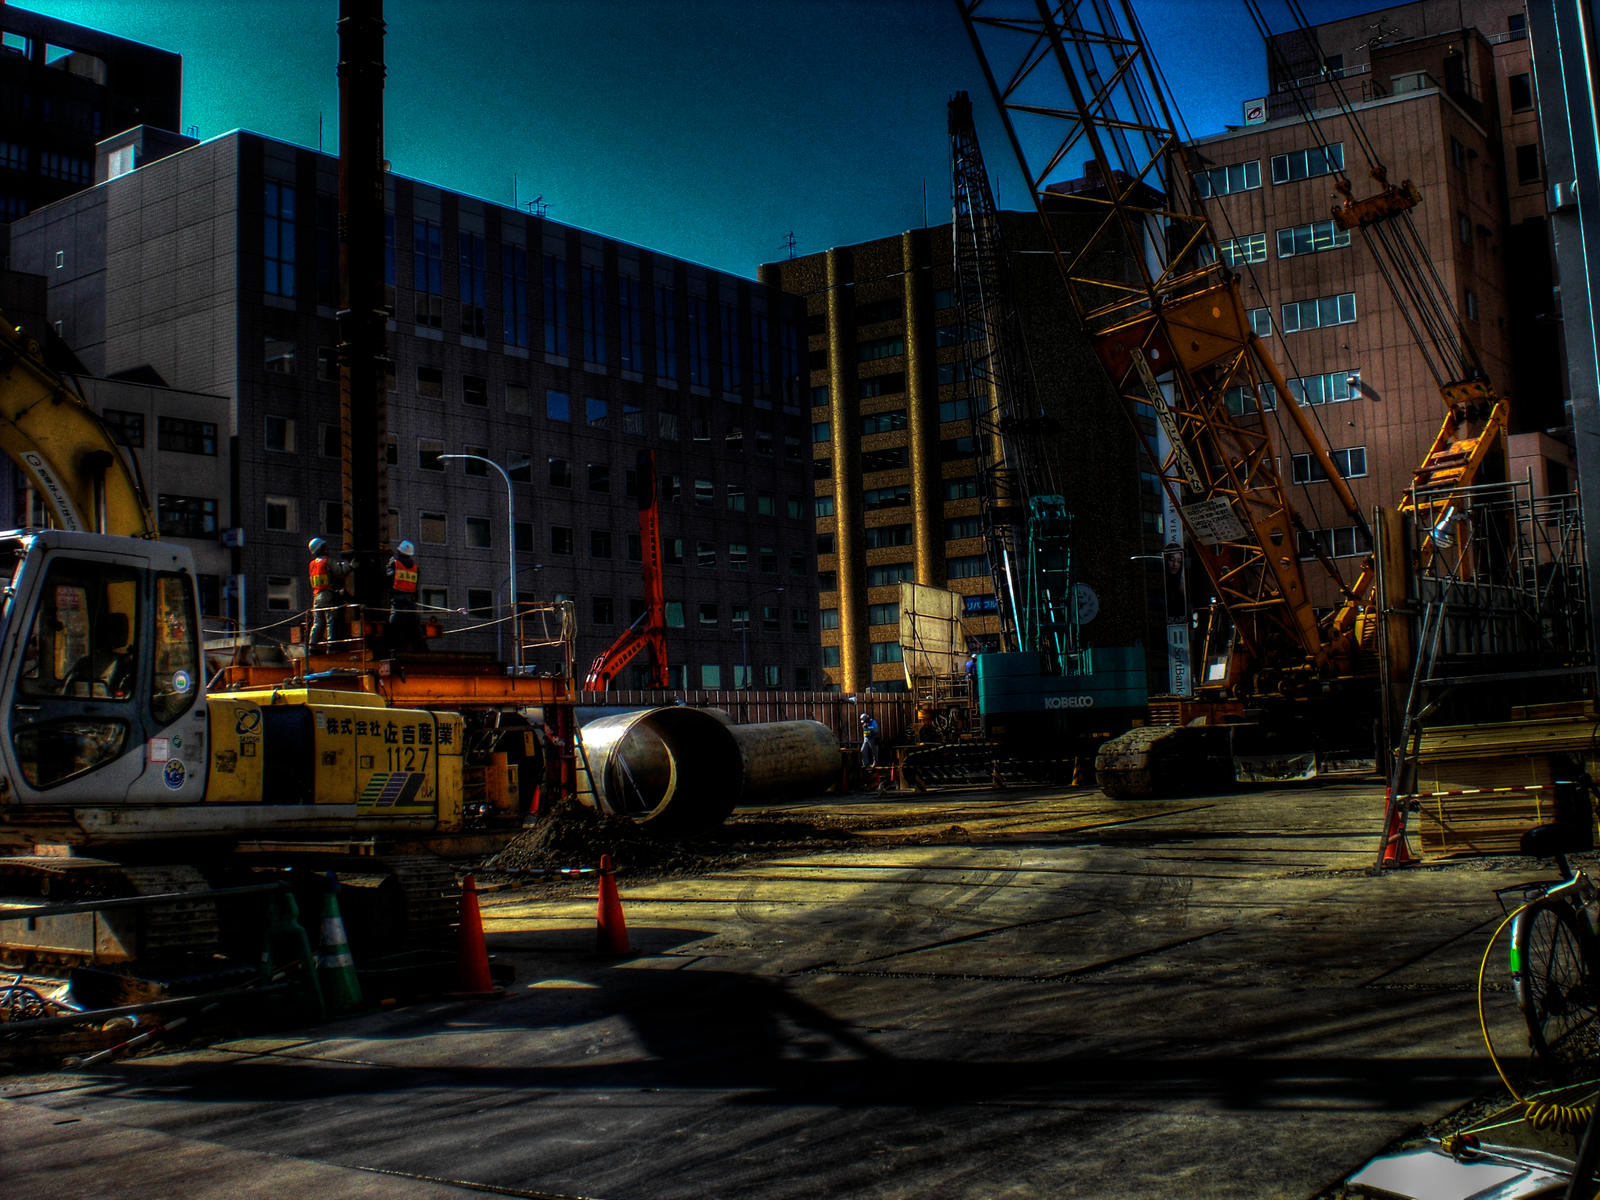 Construction Site HDR By Mertzin On DeviantArt